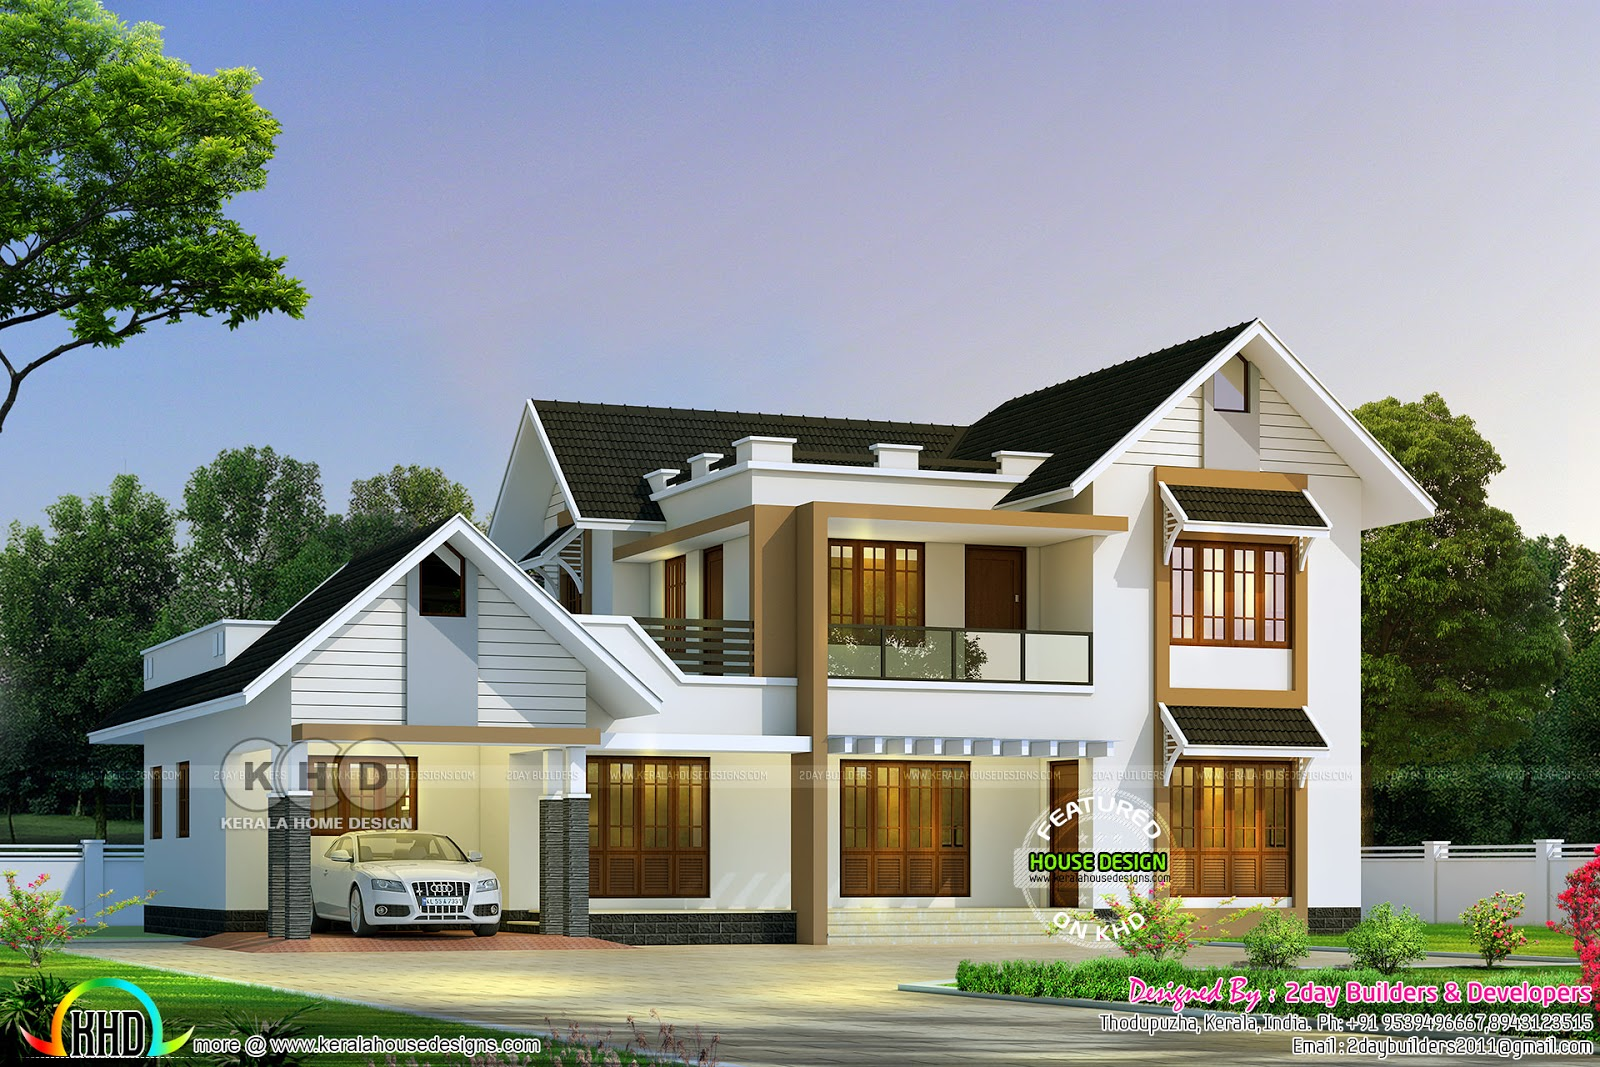 2017 kerala home design and floor plans for Home designs kerala architects